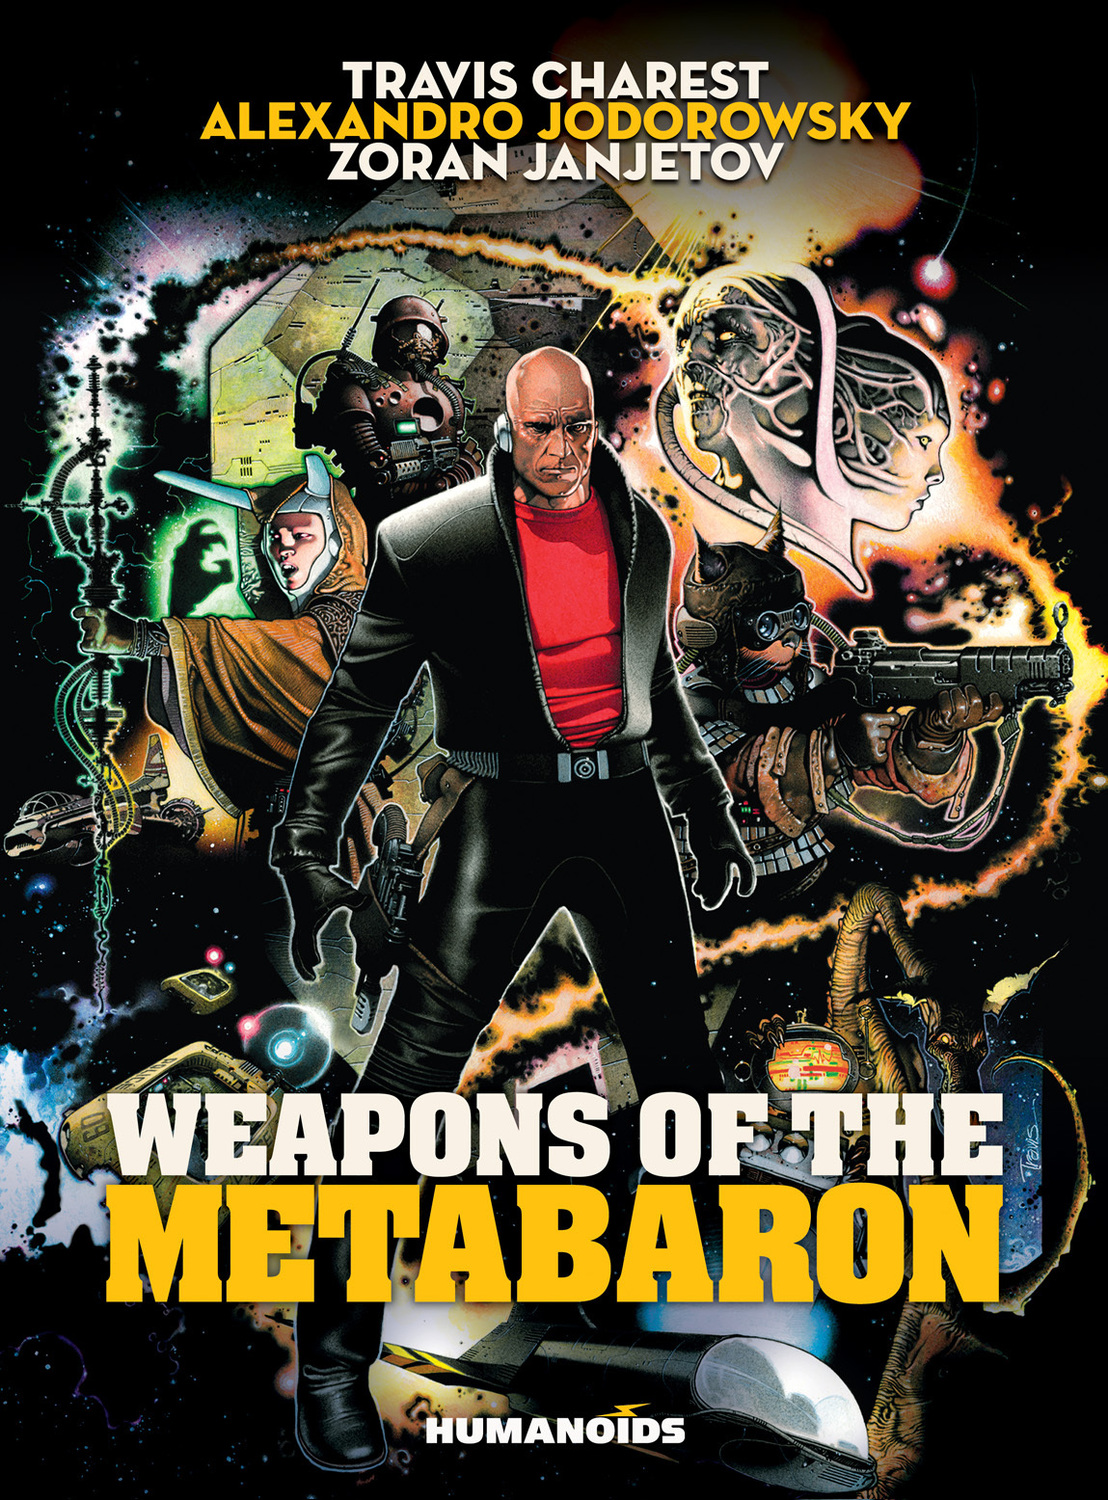 Weapons of the Metabaron how to secure the blessing of liberty